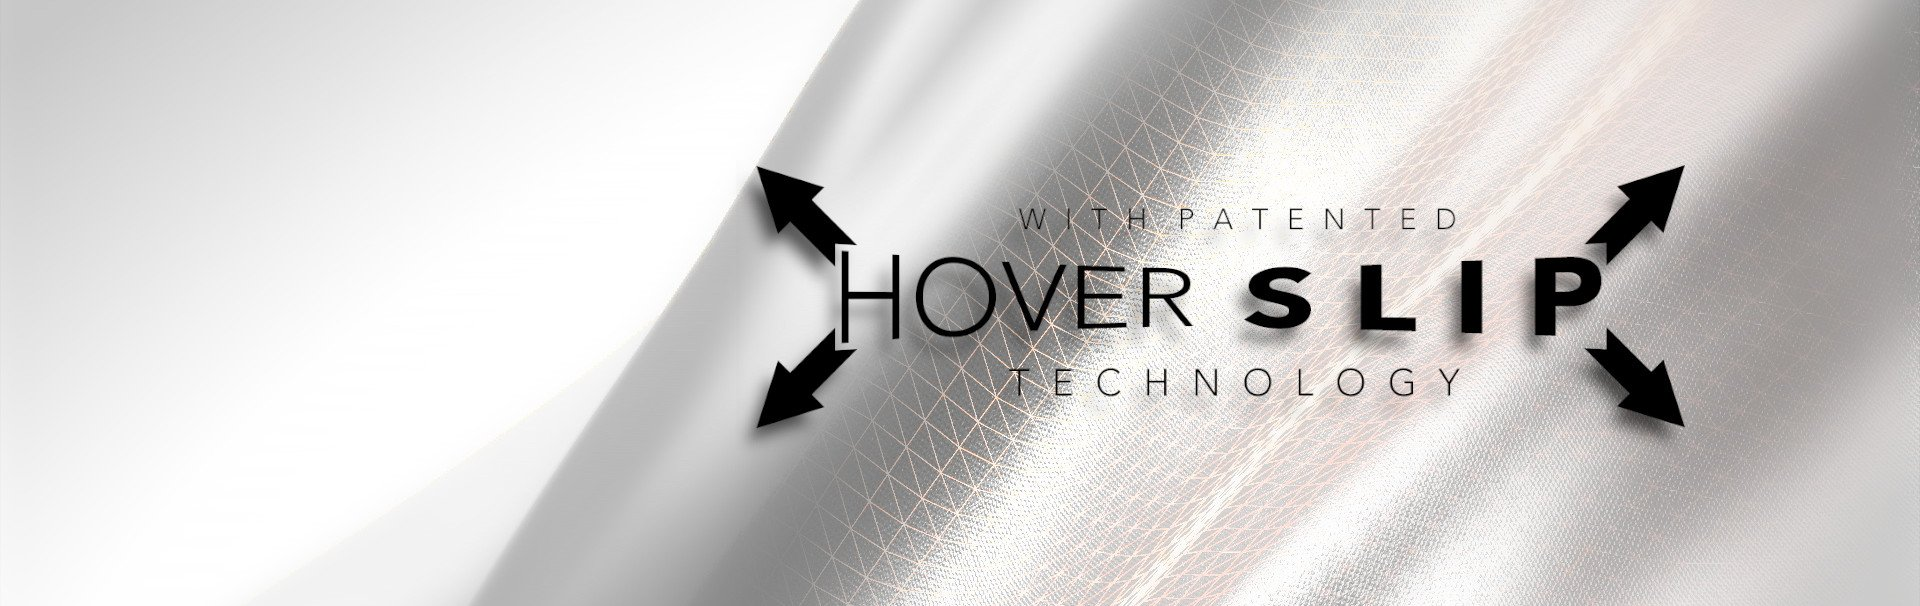 HoverSlip Technology Banner